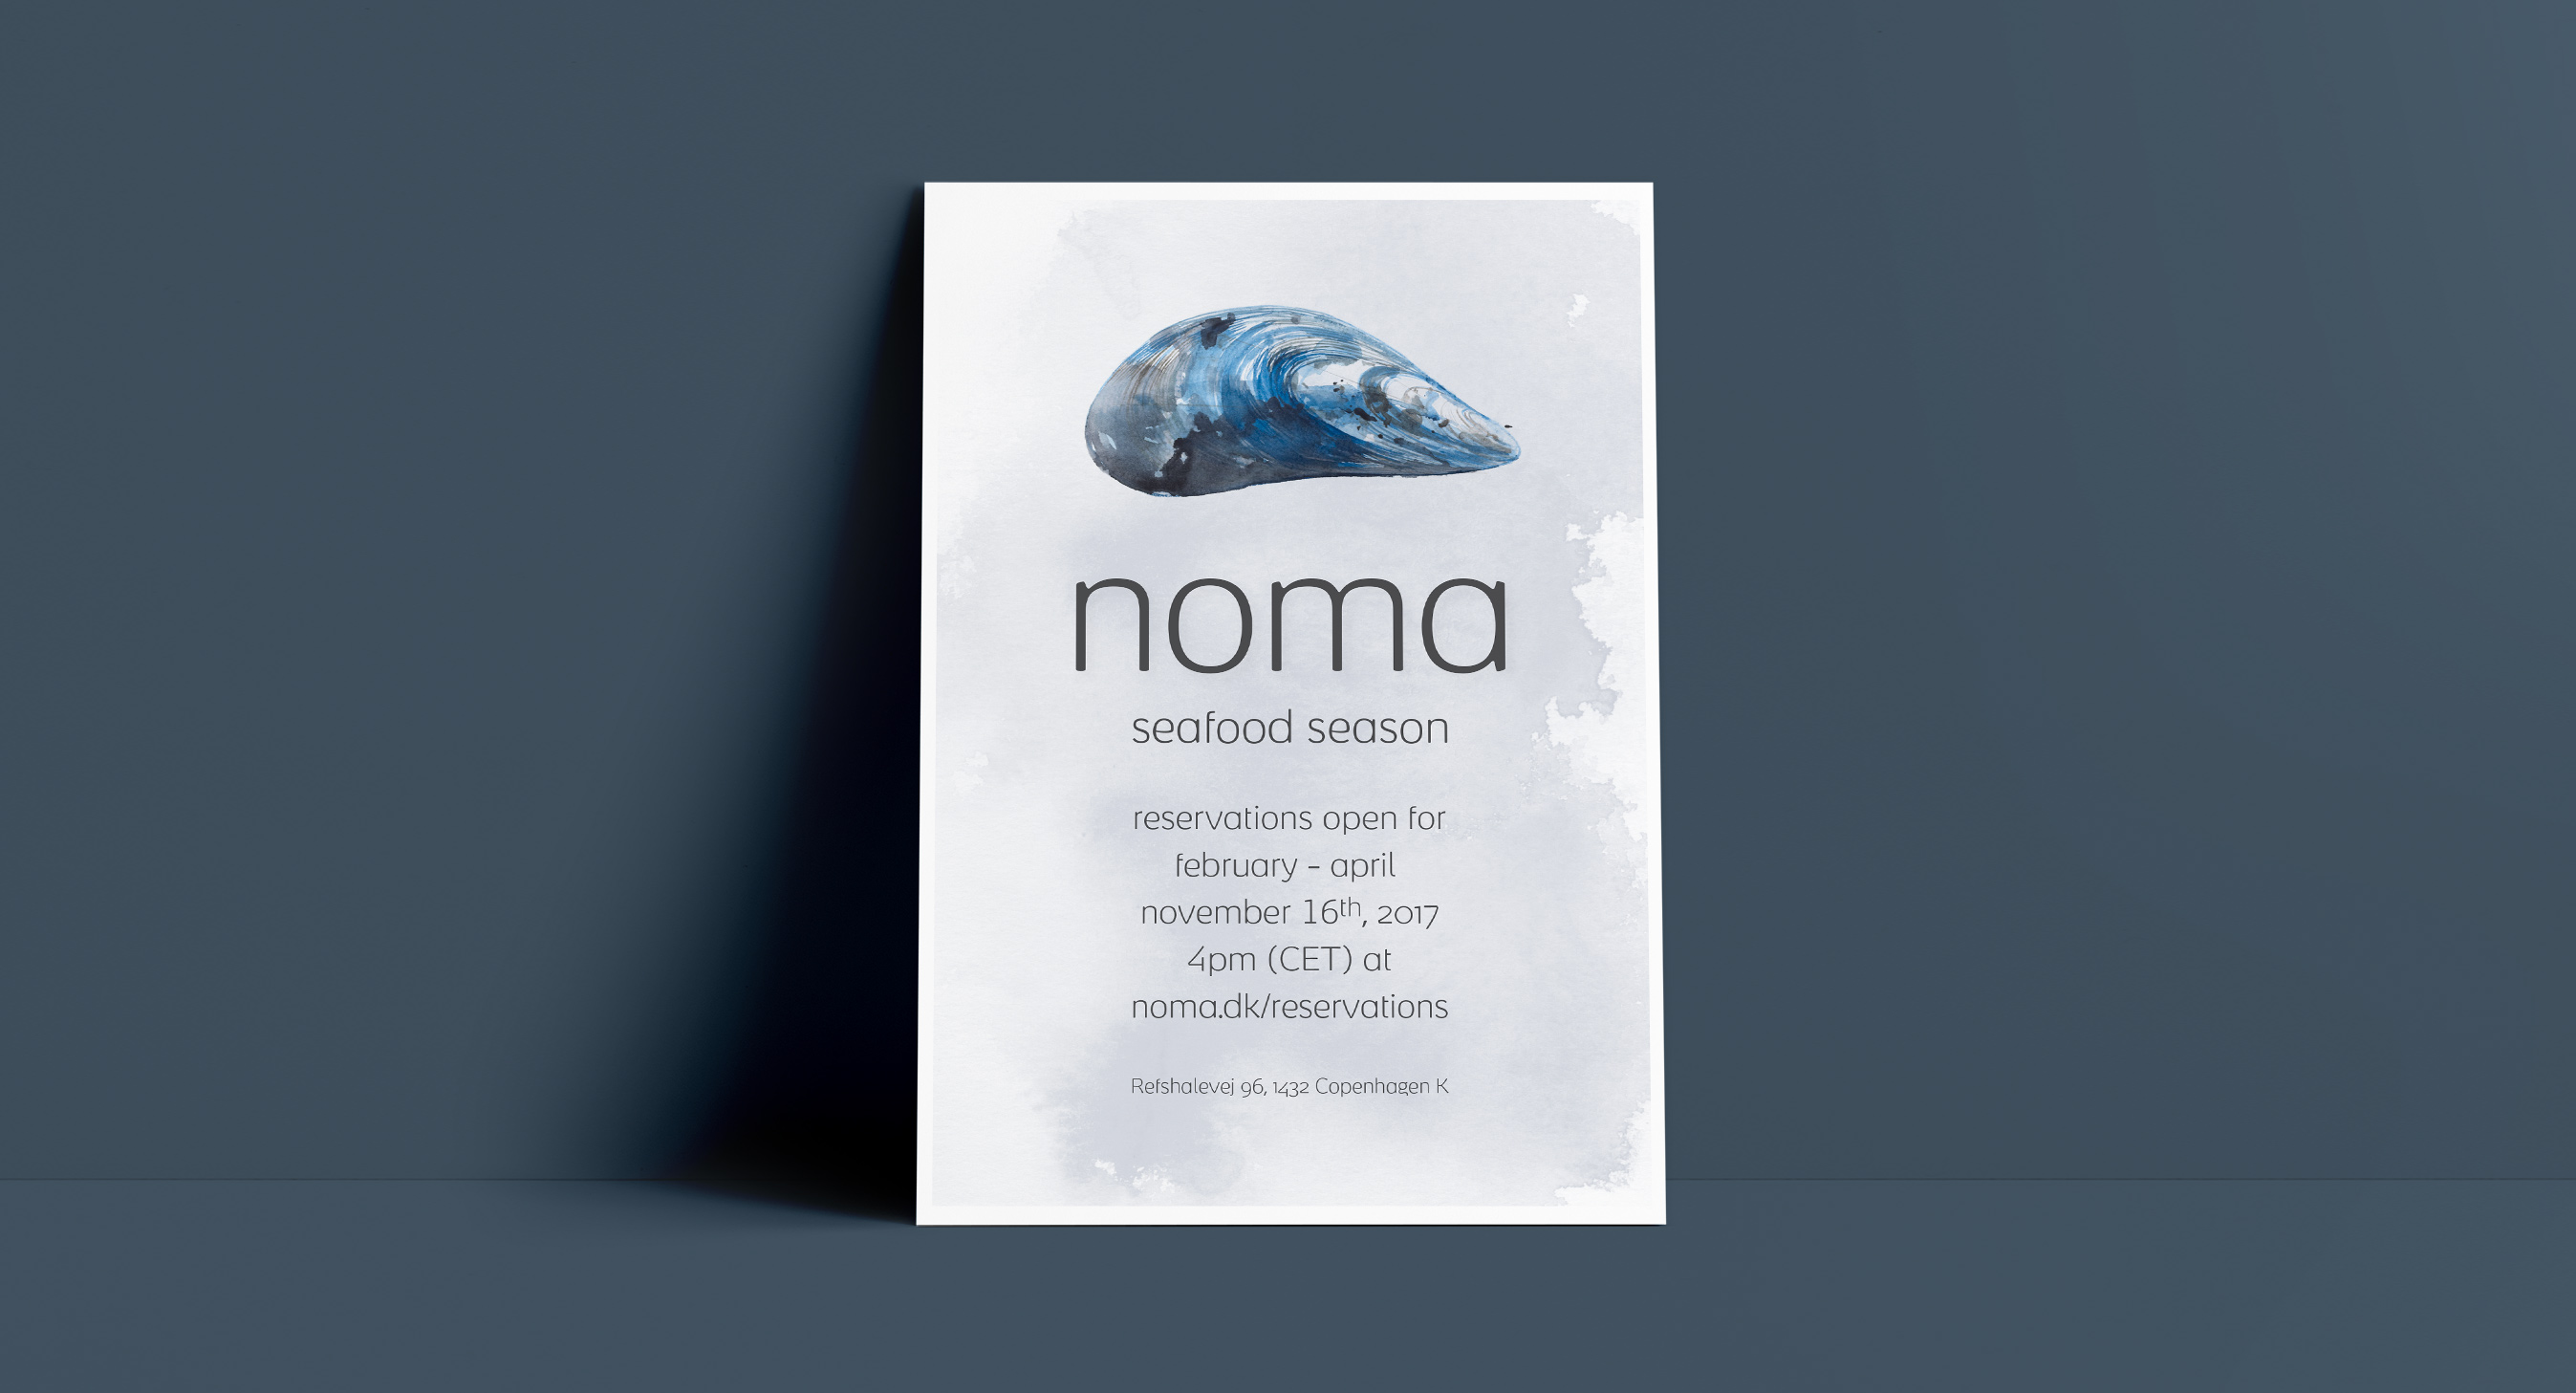 noma_booking_poster_-wide